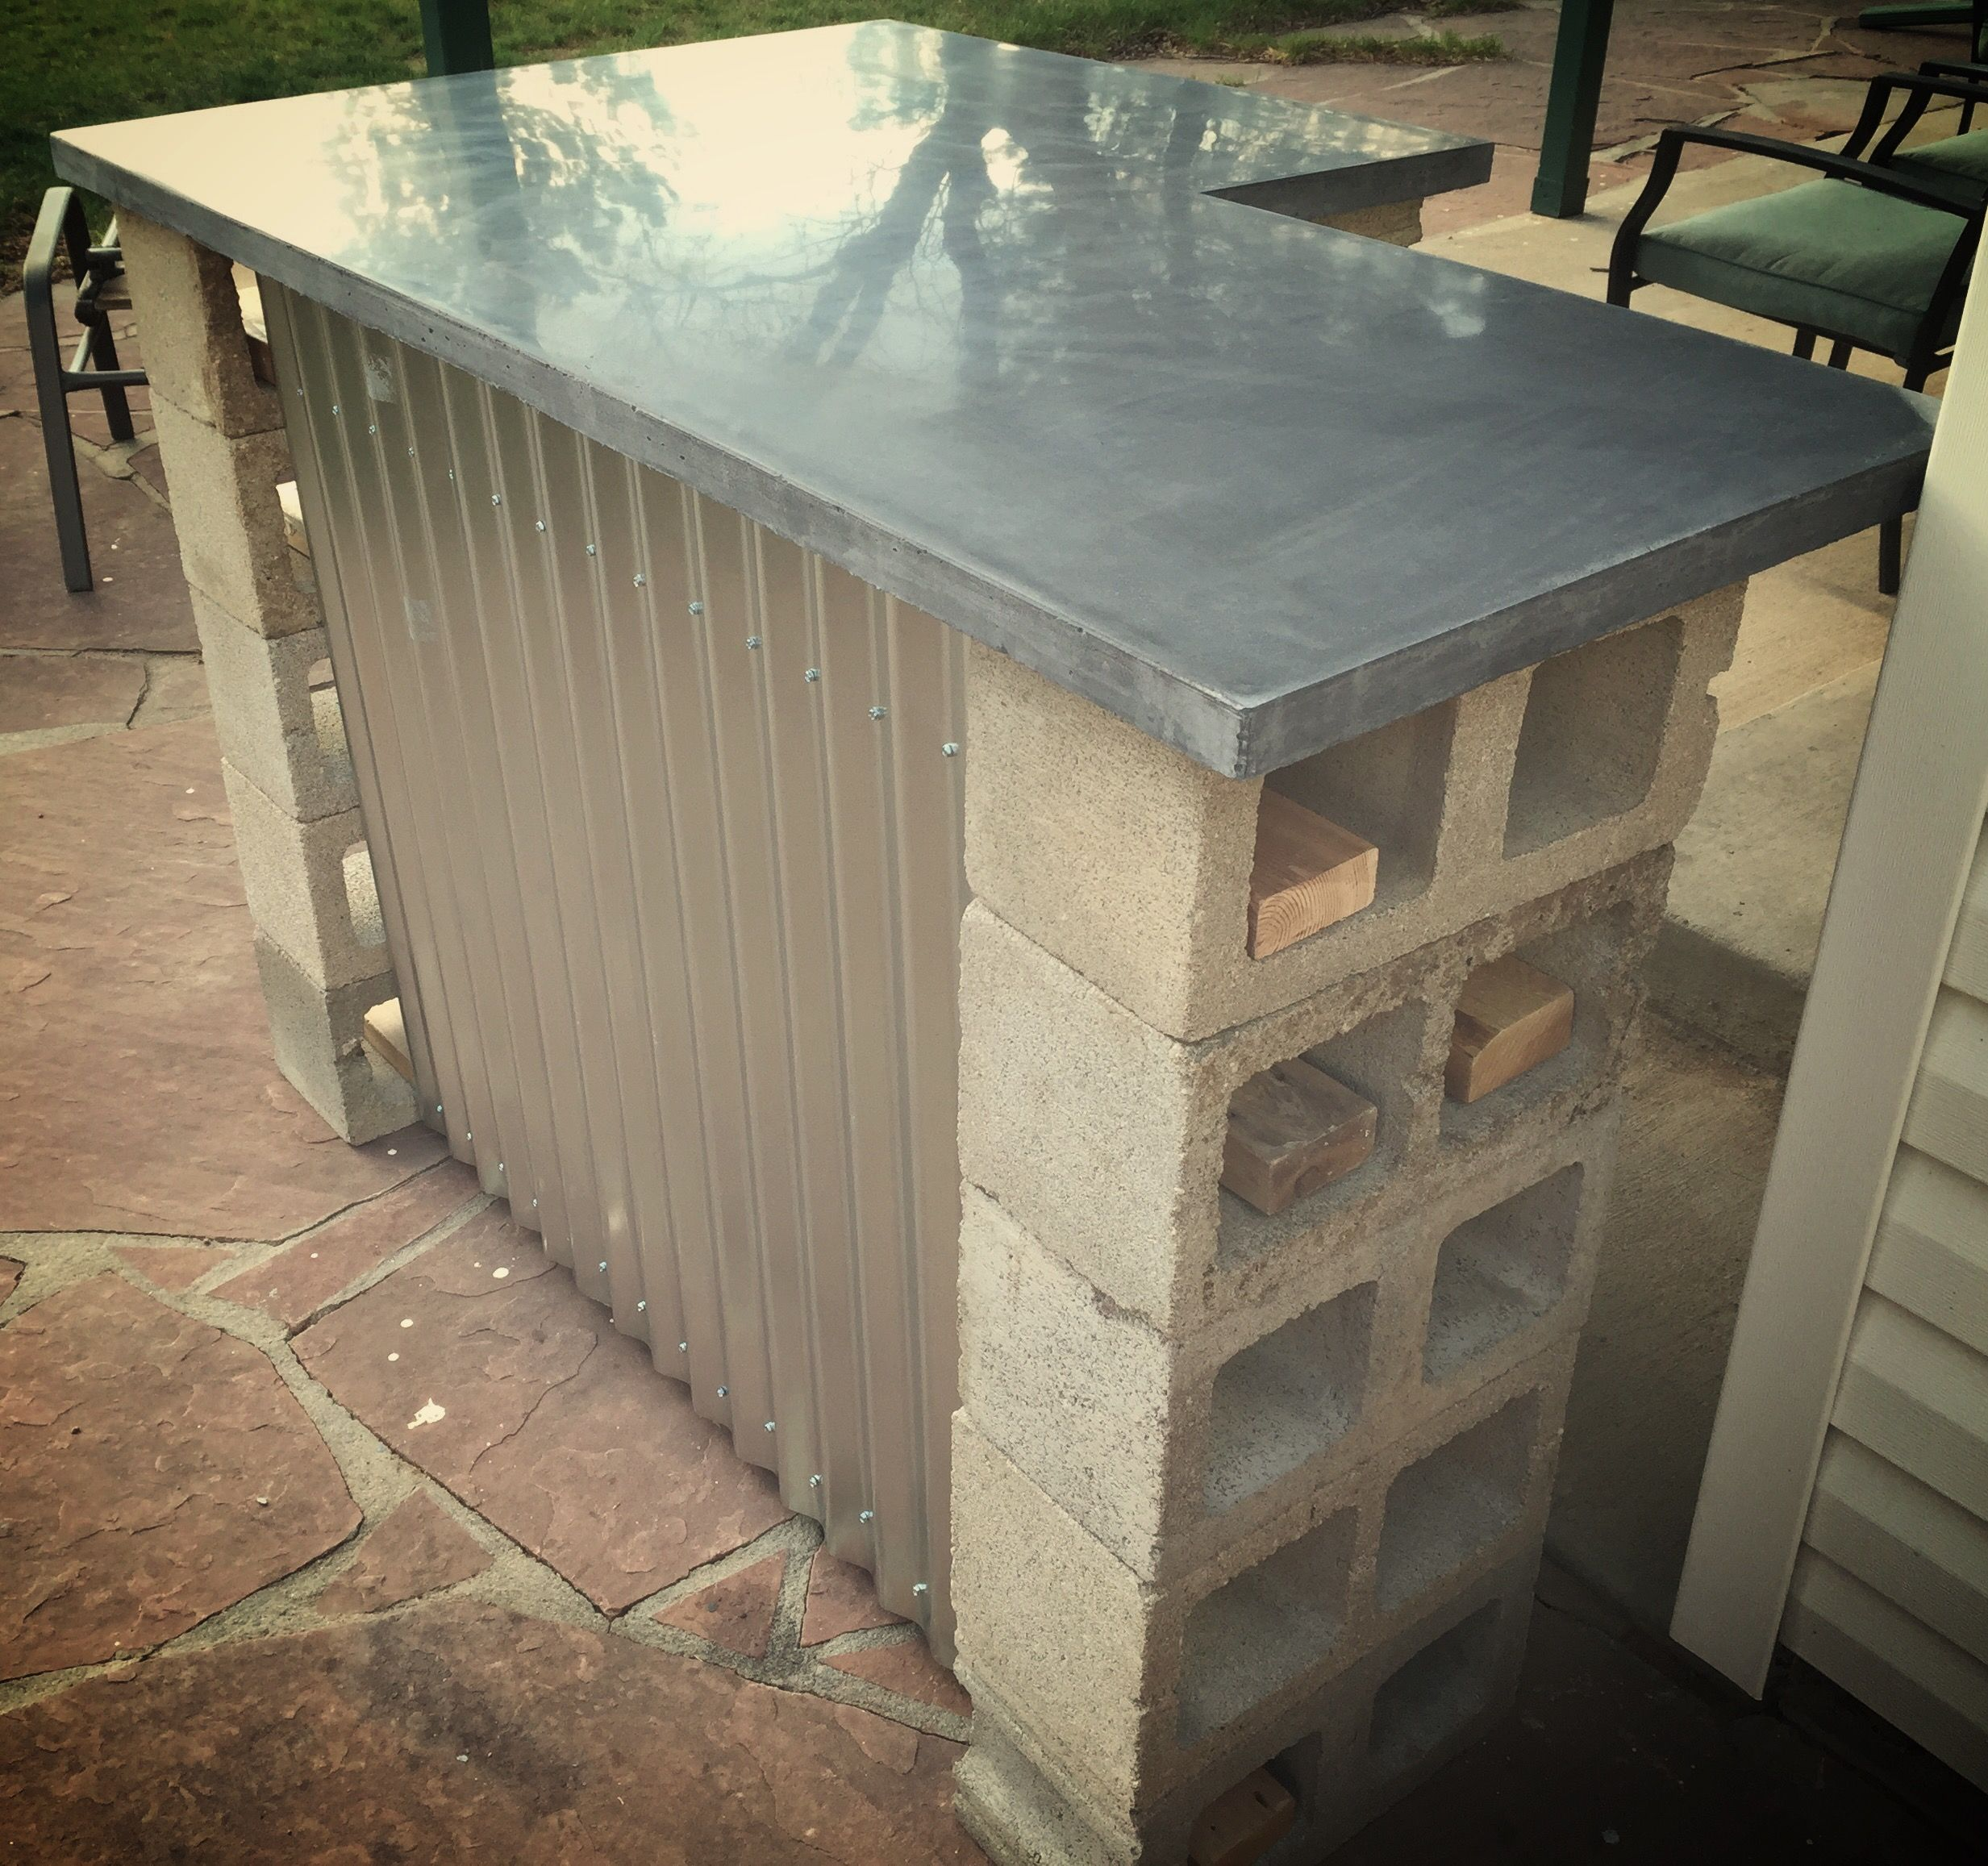 Truly Rustic Outdoor Bar Custom Grey Concrete Countertop With Cinder Blocks For Support Some 2x4s F Diy Outdoor